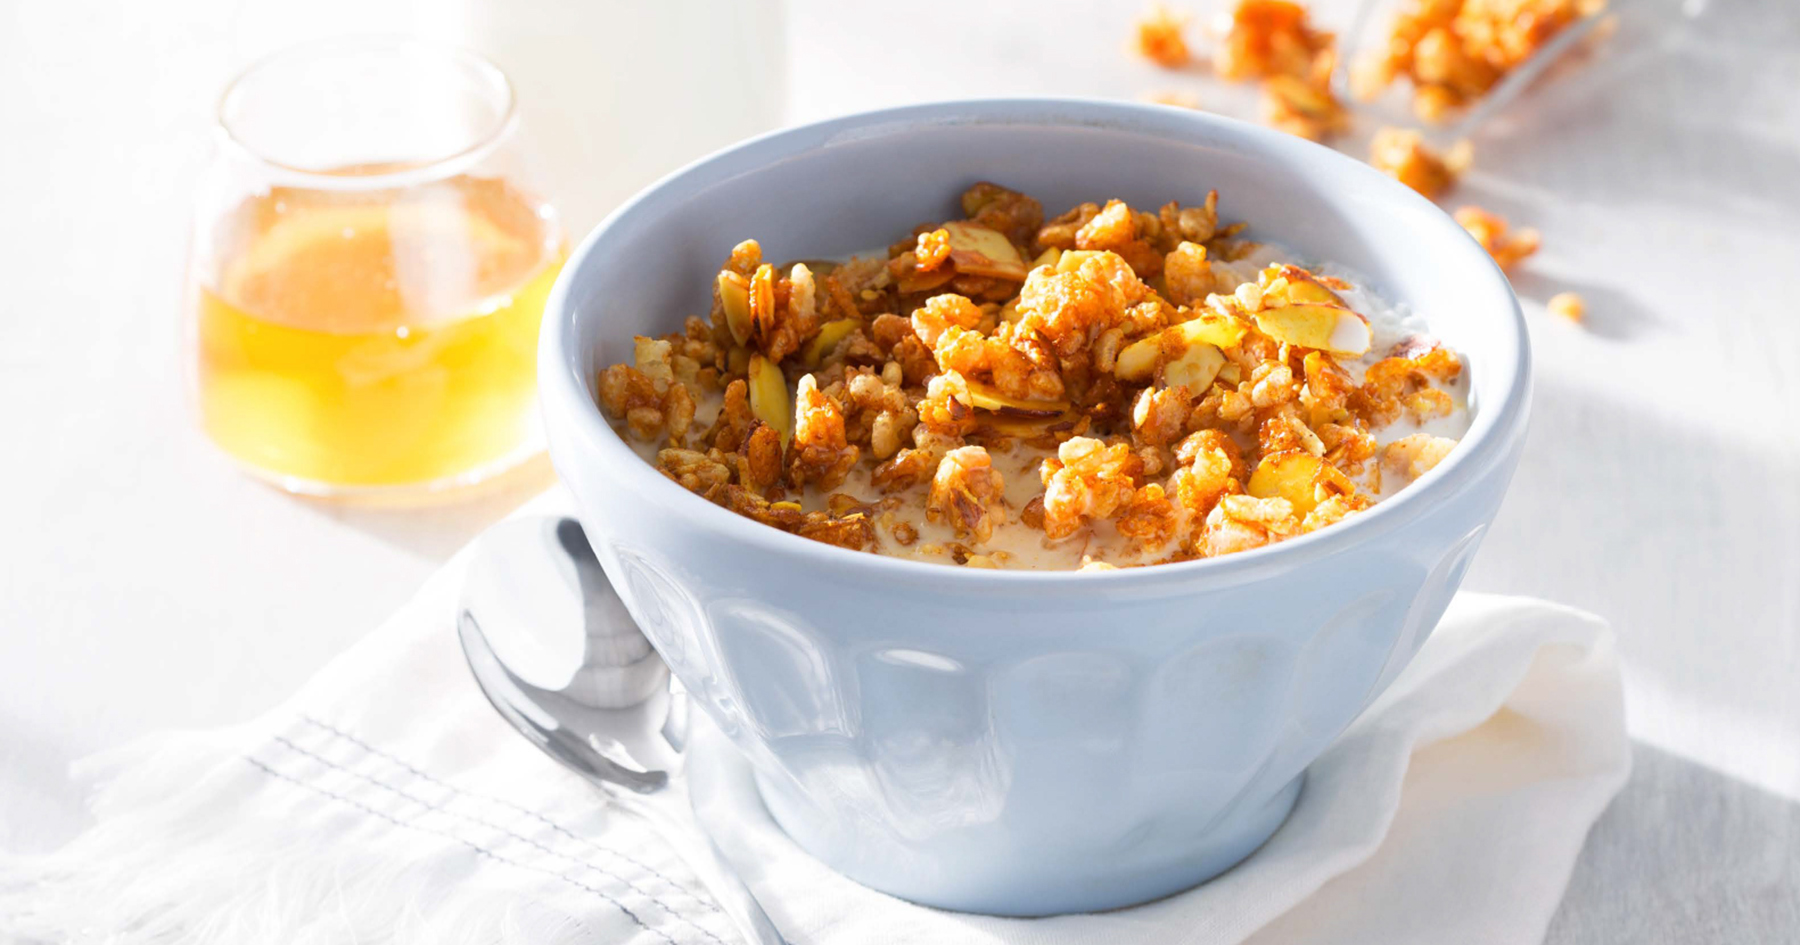 Honey Nut Puffed Cereal